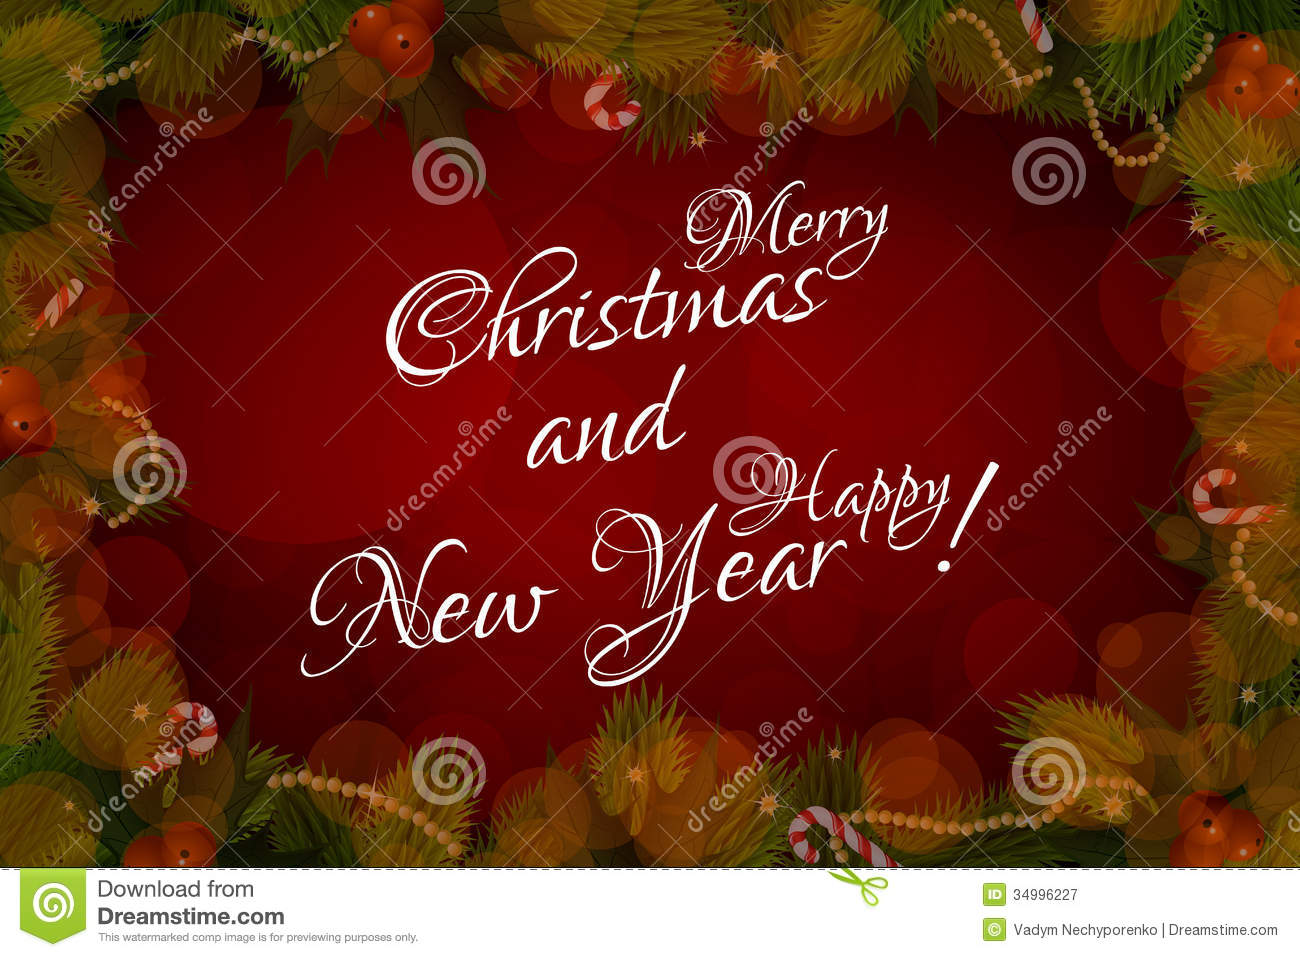 merry christmas new year cards 2019 new year images 2019 new year images